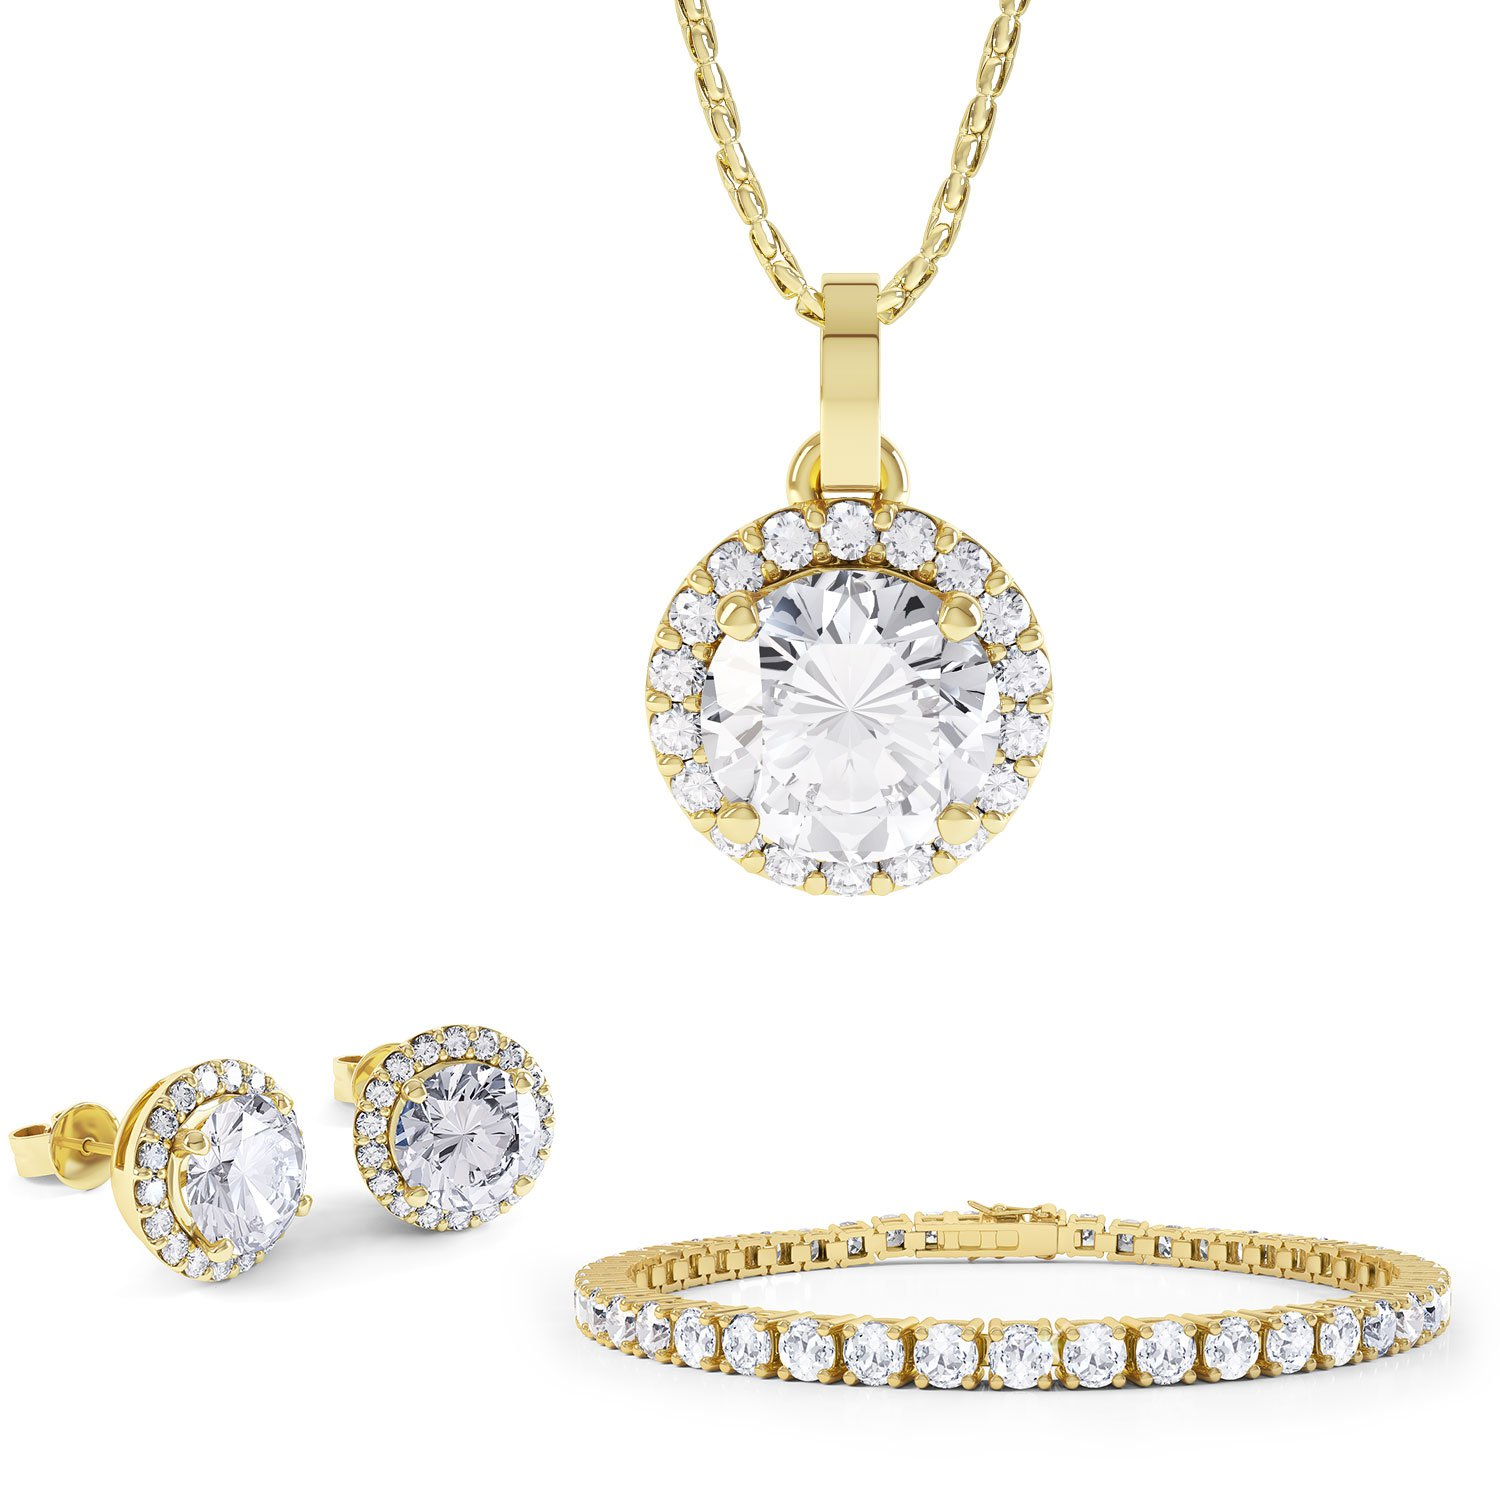 Eternity White Sapphire 18ct Gold Vermeil Jewelry Set with Pendant